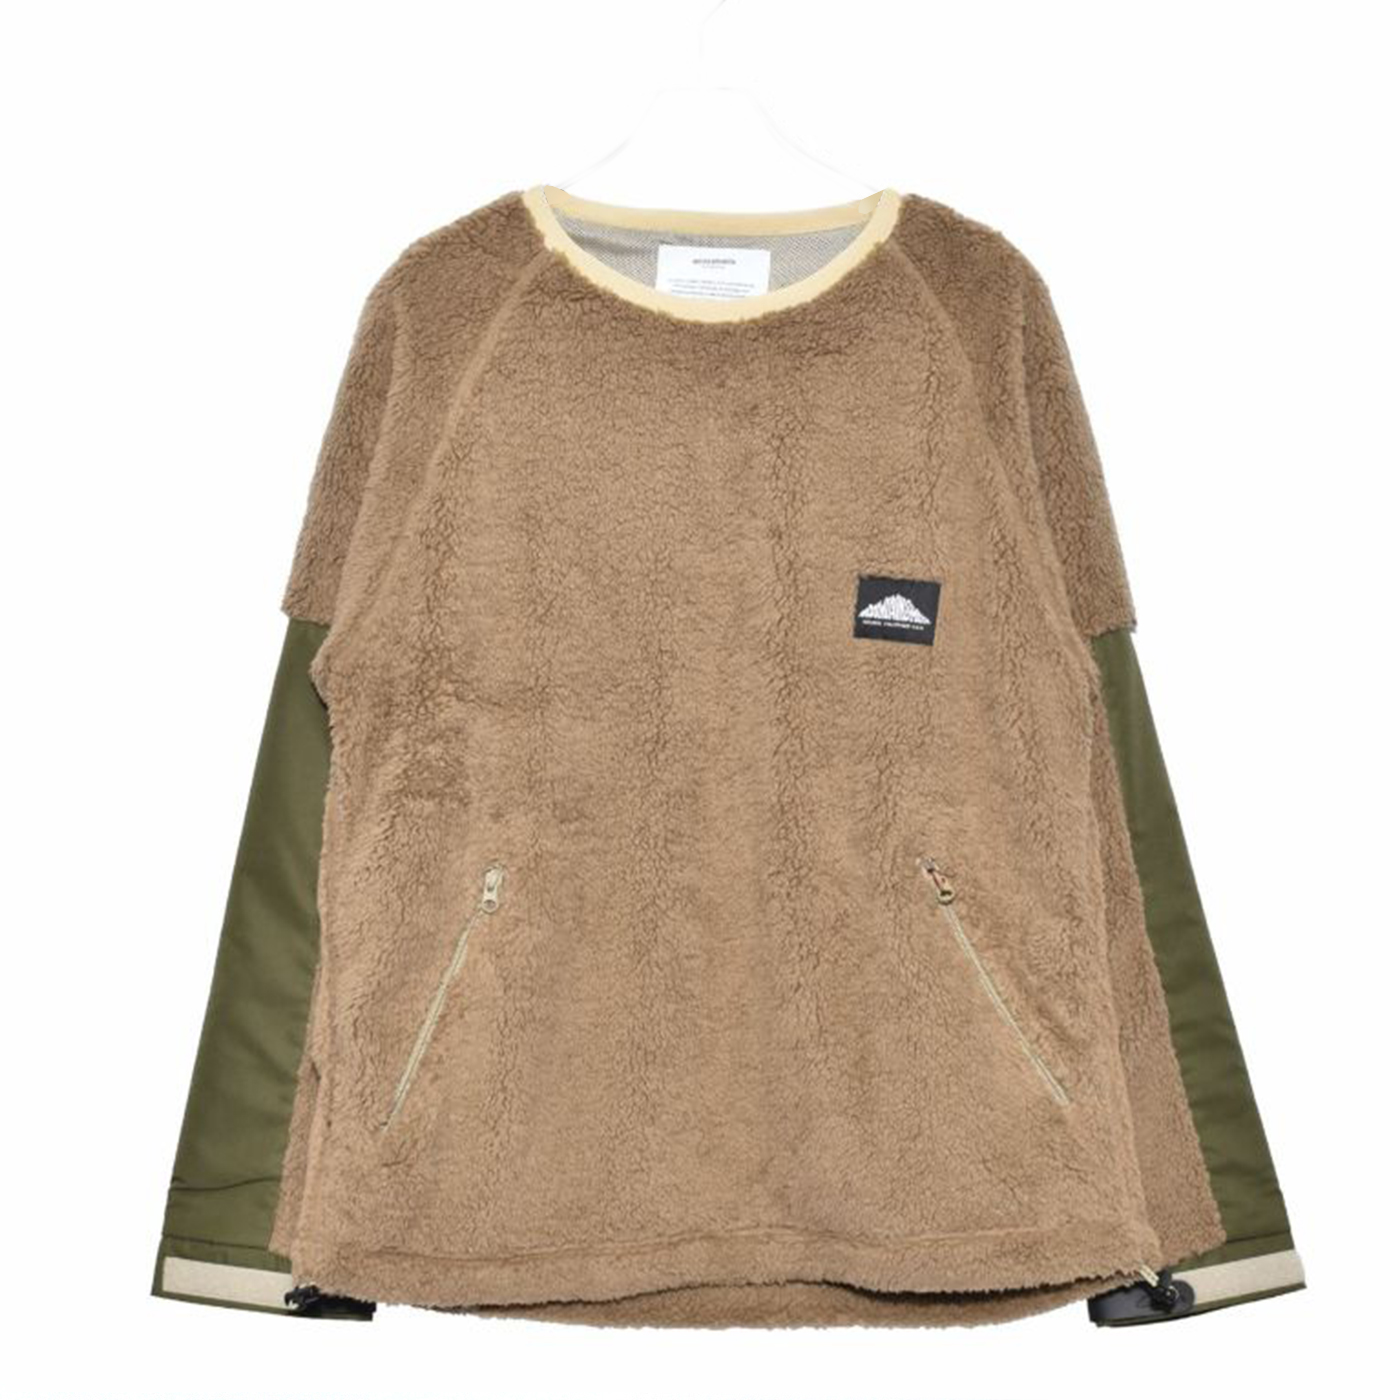 product: FLEECE PULL OVER / color: BROWN 1